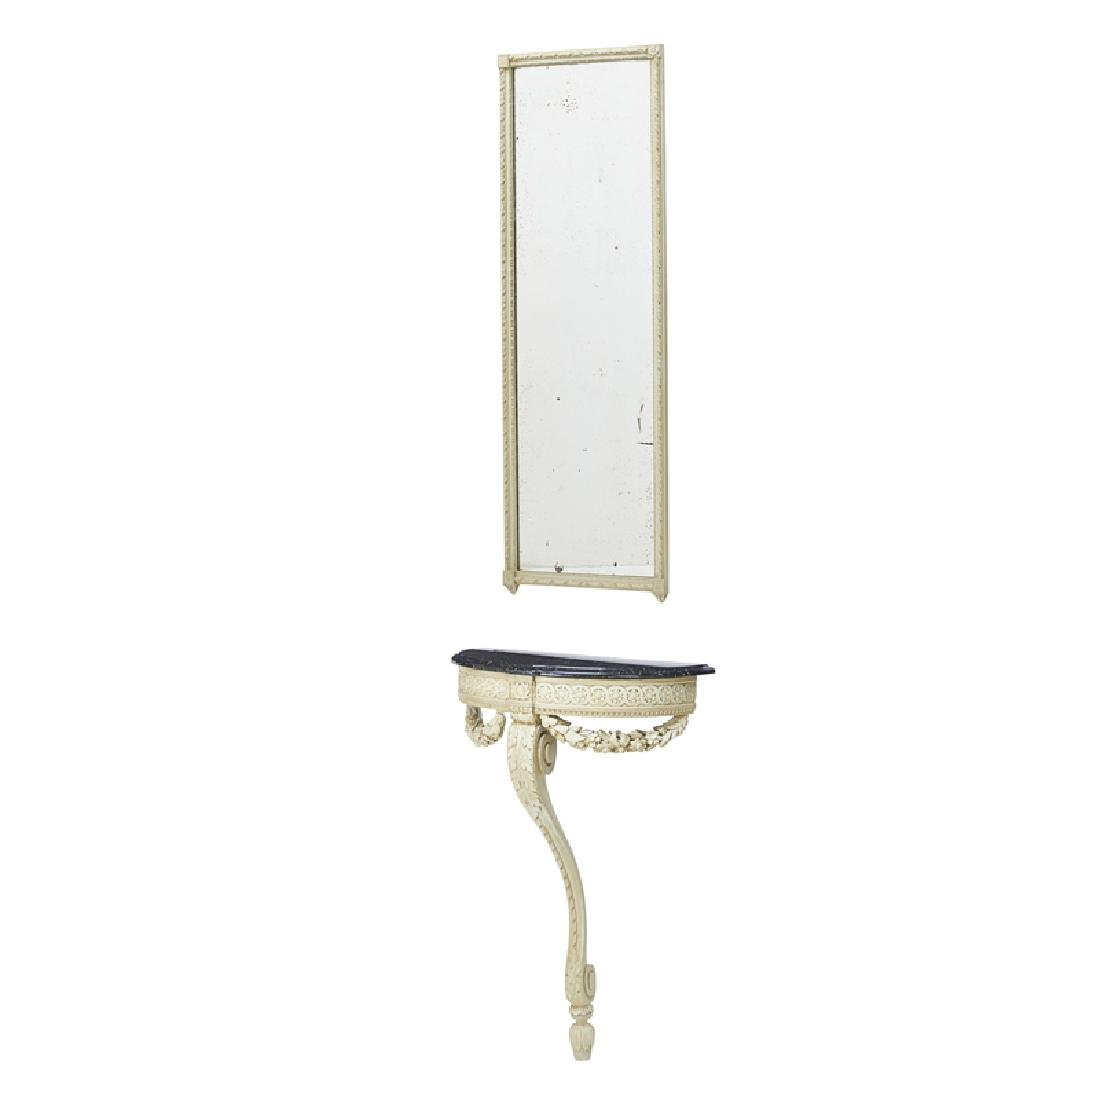 LOUIS XVI STYLE PAINTED CONSOLE AND MIRROR